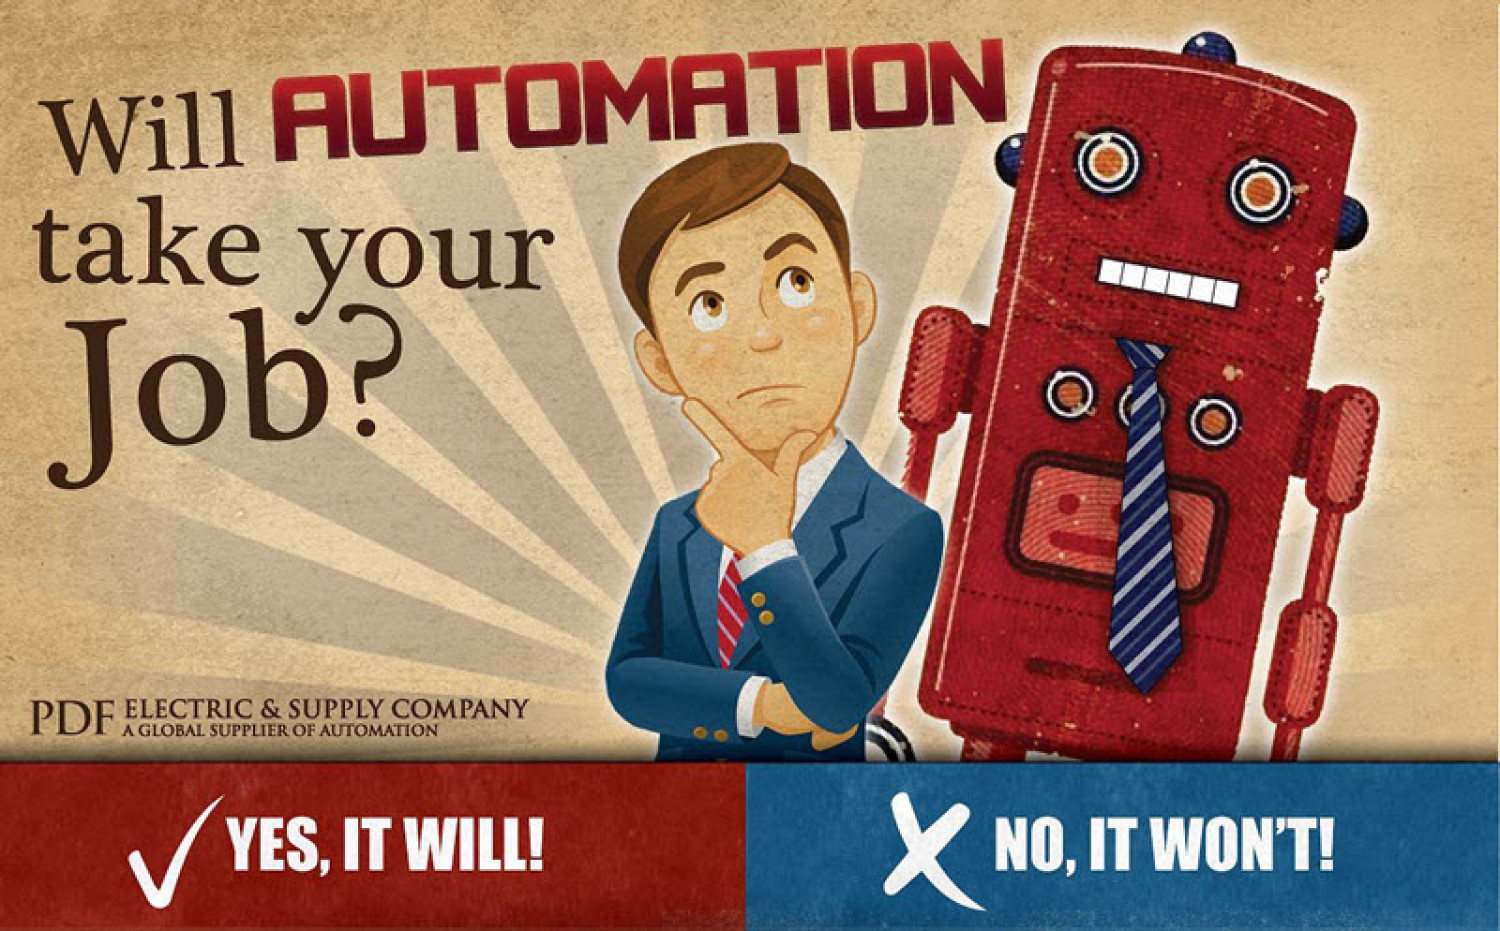 Will Automation Take Your Job? Infographic